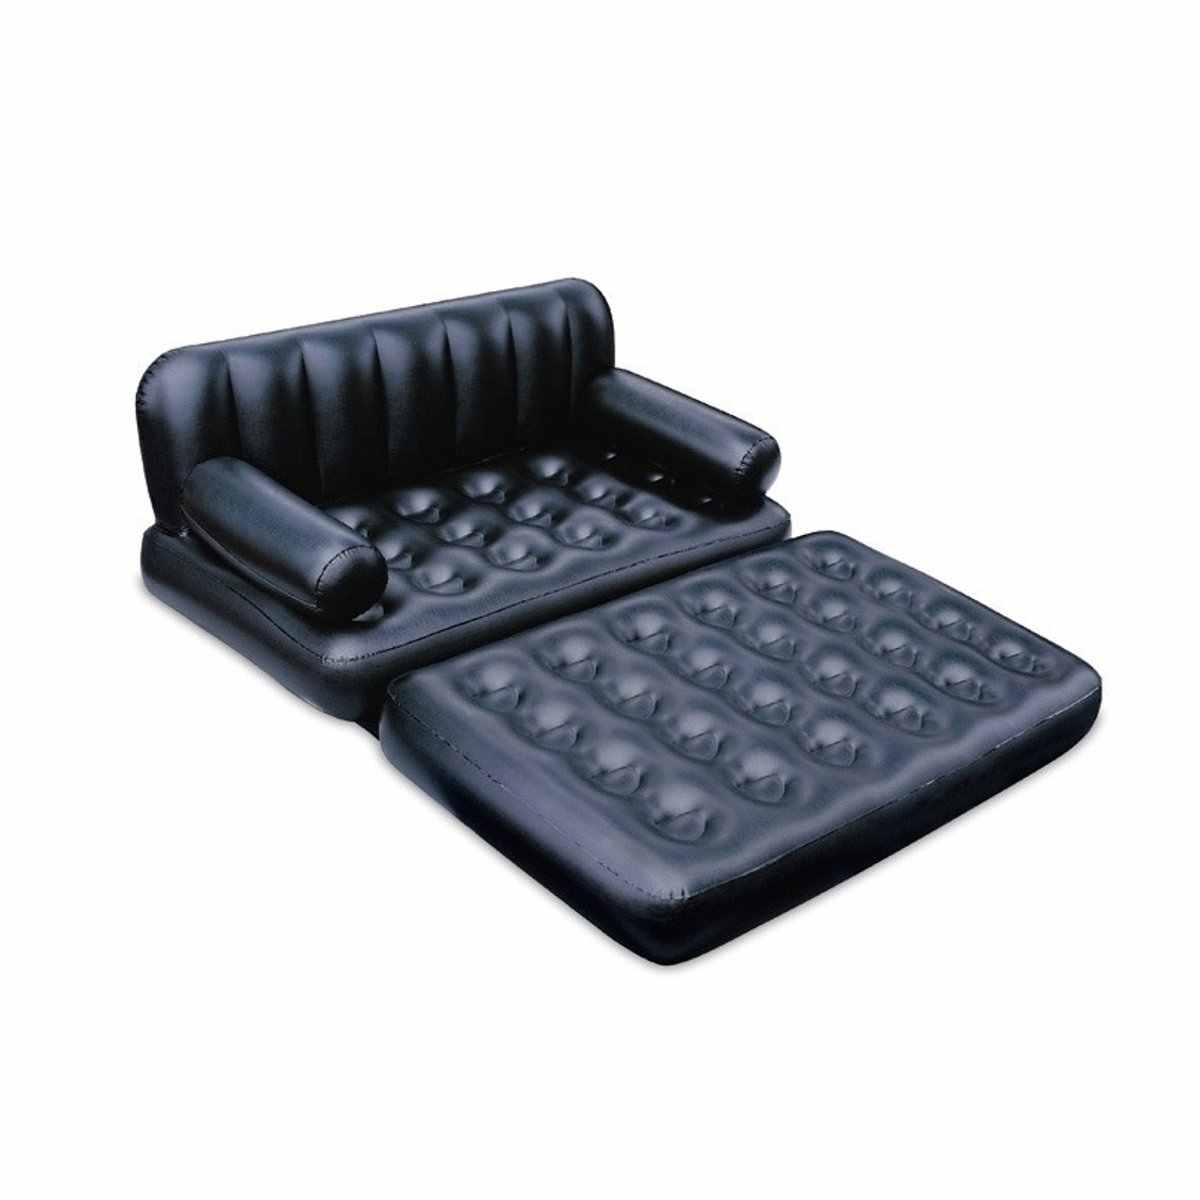 Black Inflatable Garden Sofa Lounge Blow Up Air Bed Multifunction Couch Camping Outdoor Furniture Mattress Airbed For 2 People